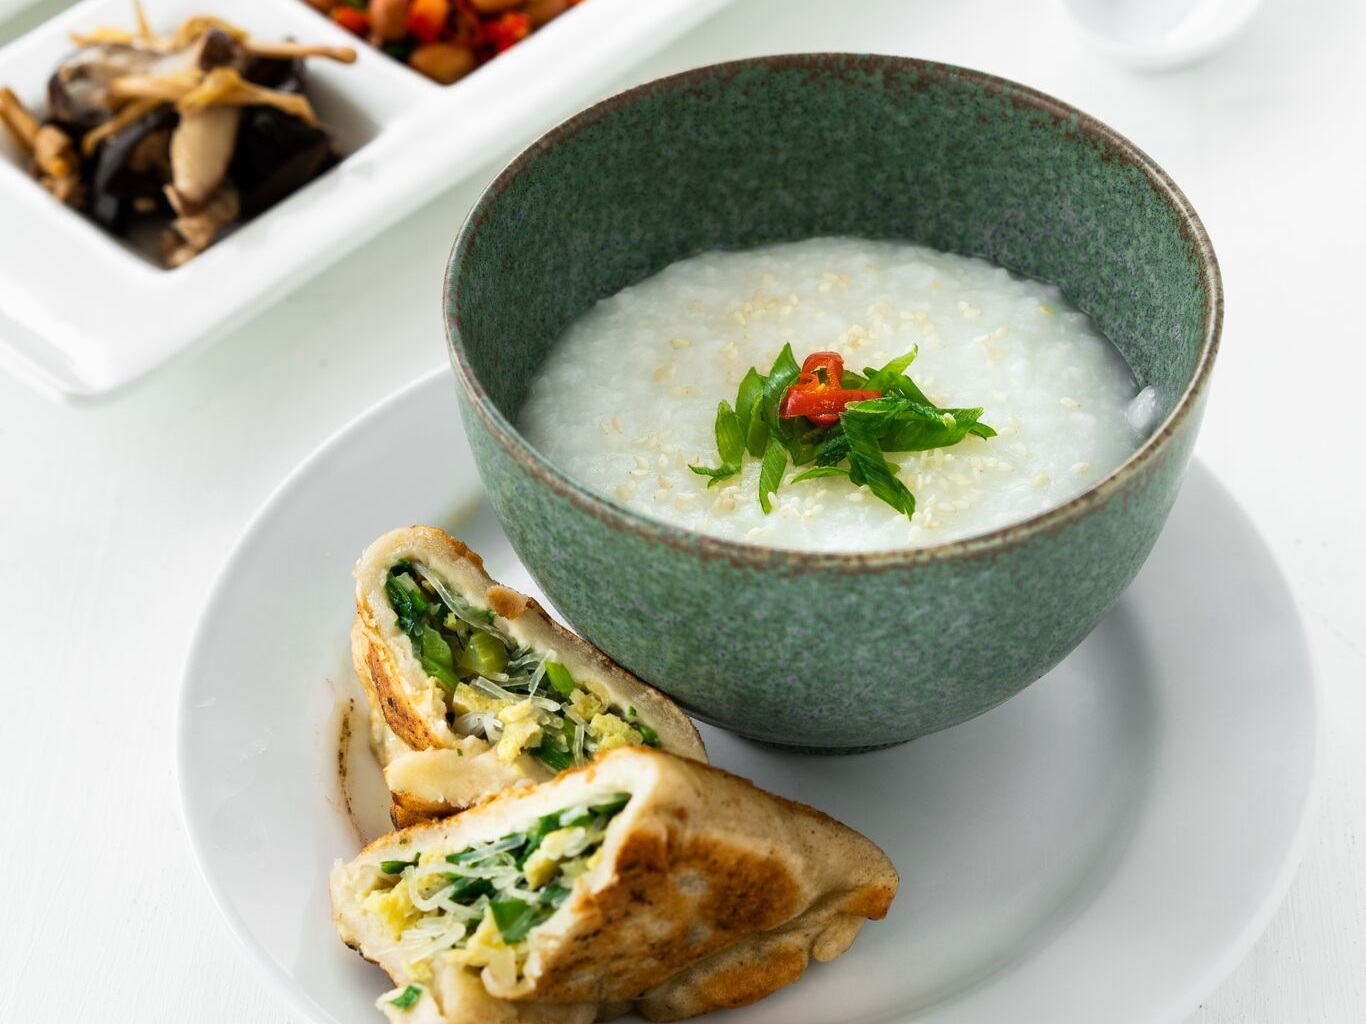 Congee and Me Pop-up - Monday Oct 7, 2019 | 8:30am - 10:30am: Congee and Me is bringing traditional rice porridge back in style with fun toppings, some extra spunk, and lots of love. Come try our twist on the original Chinese breakfast. It is inspired by how Brookline native, Arielle Chernin, grew up eating in a Chinese-American household.RSVP